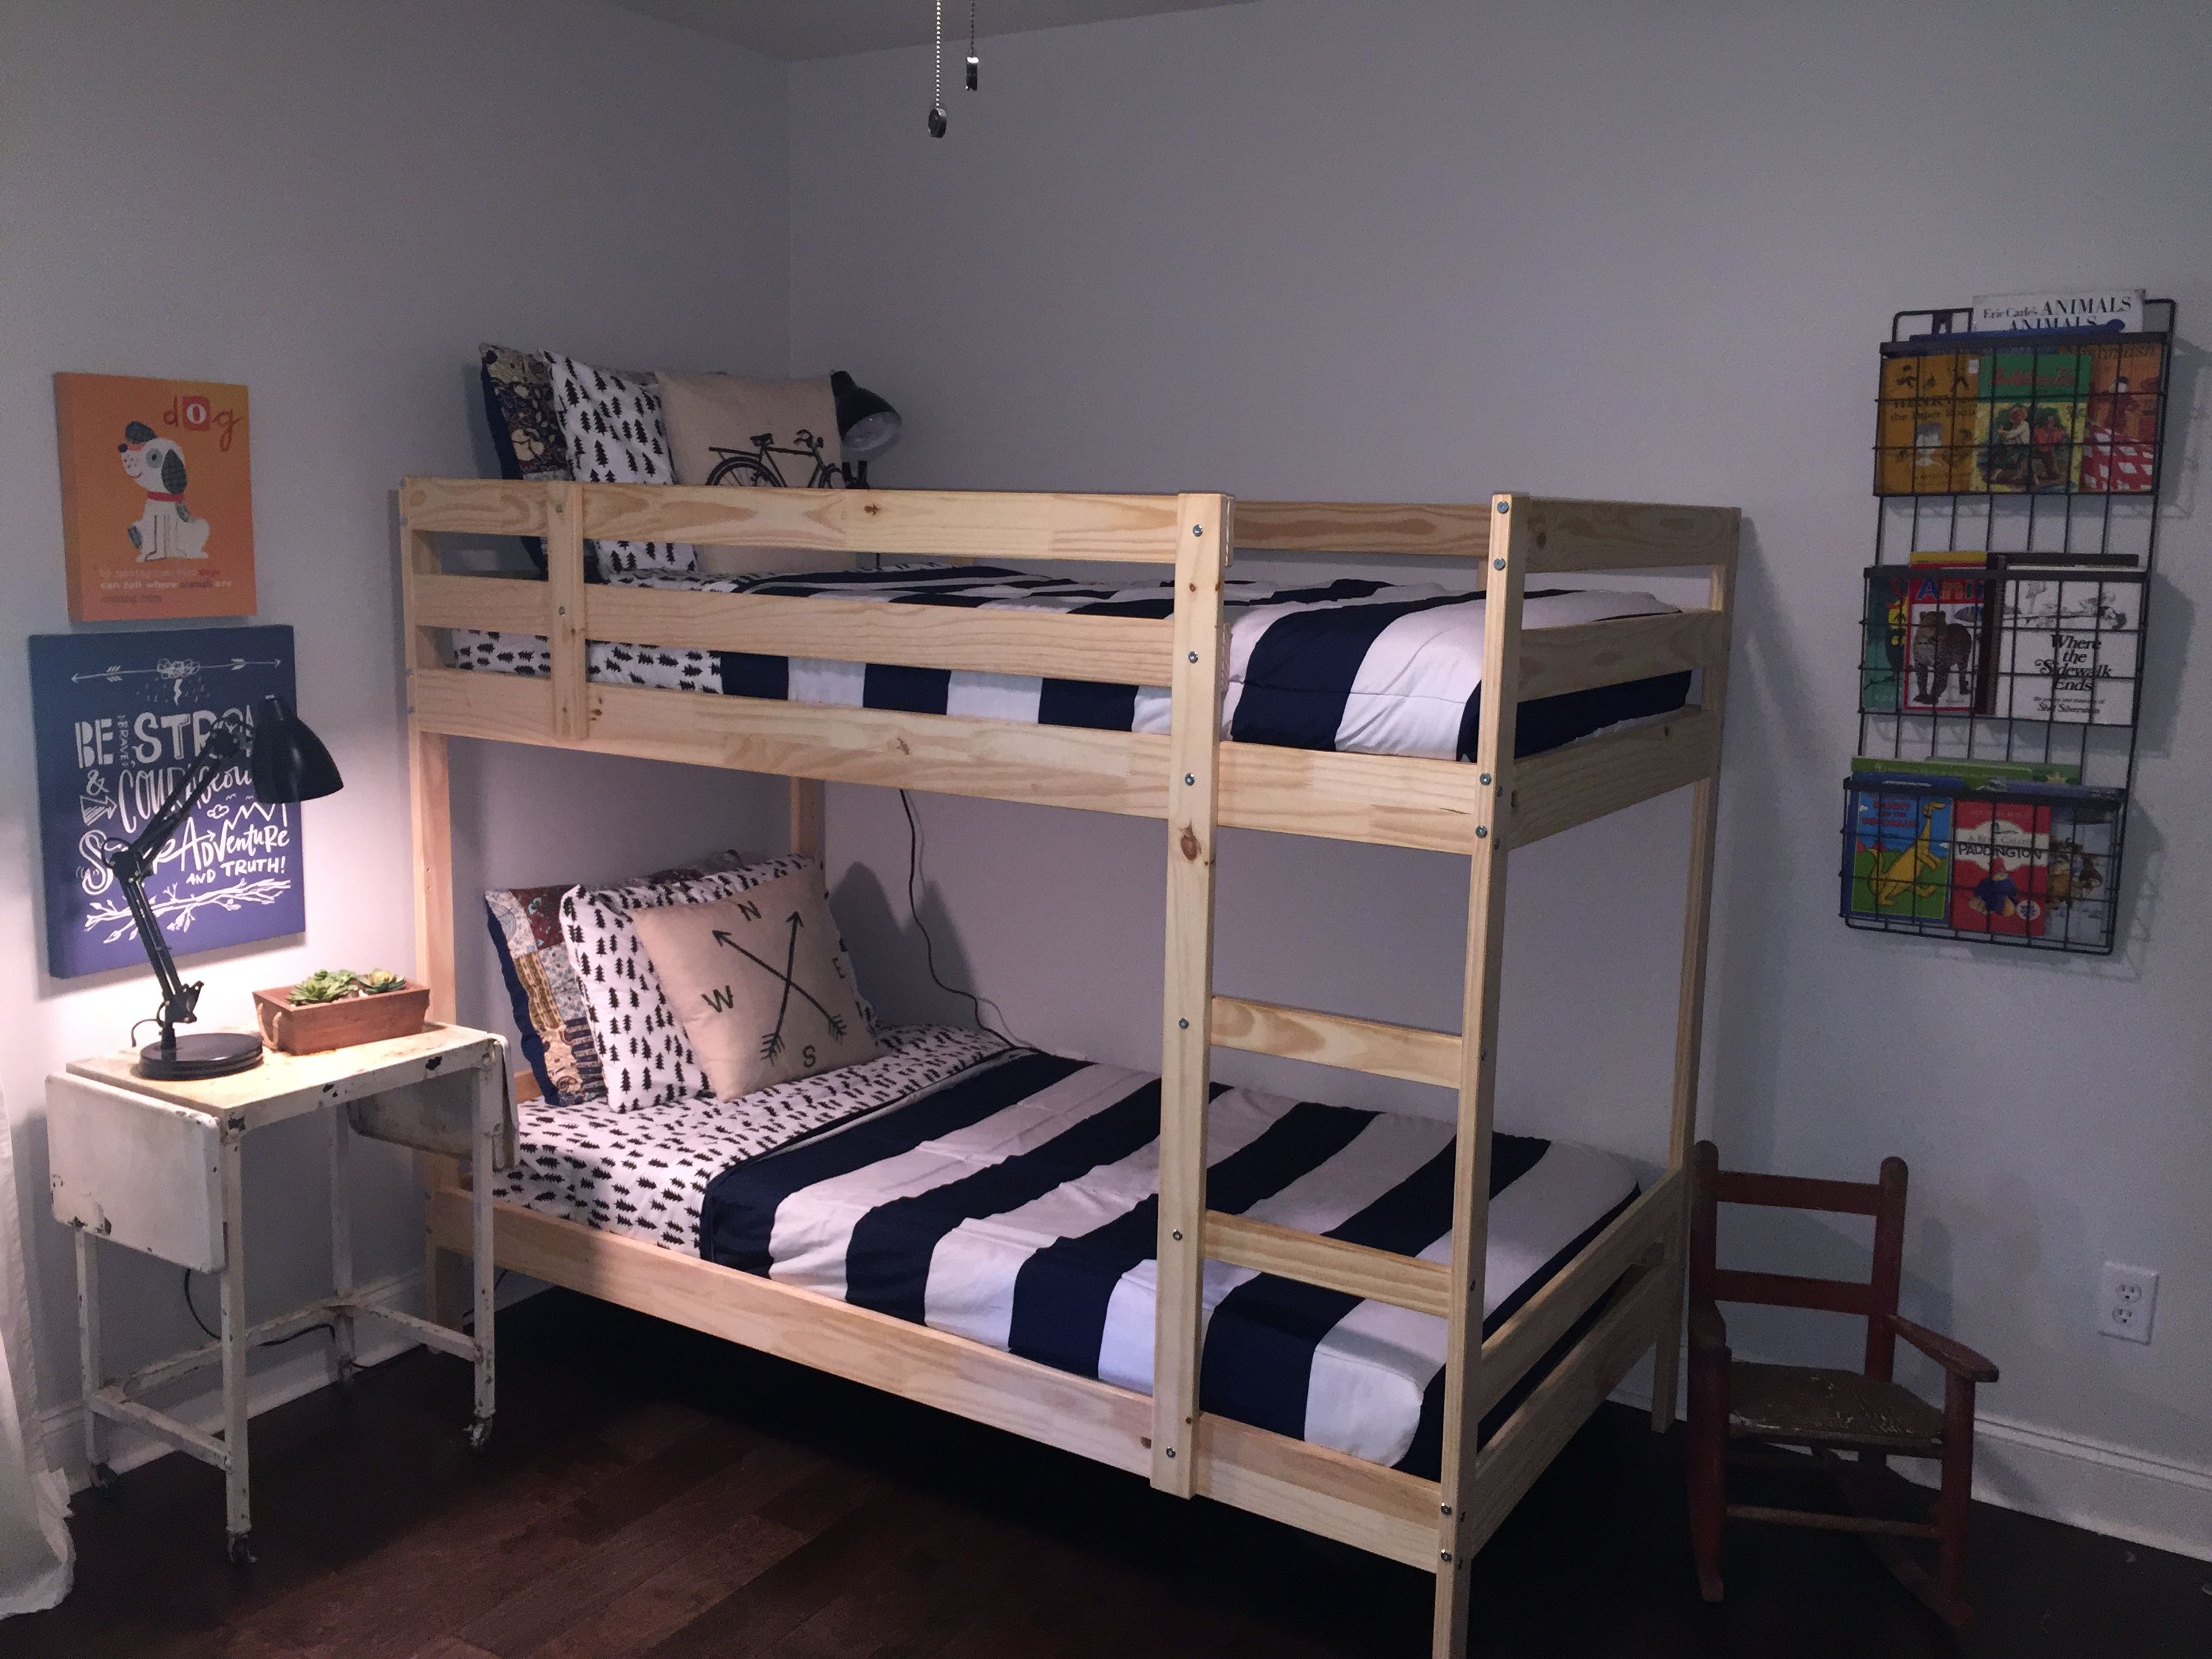 ikea mydal bunk beds adventure shared boys room - Ikea Shared Kids Room